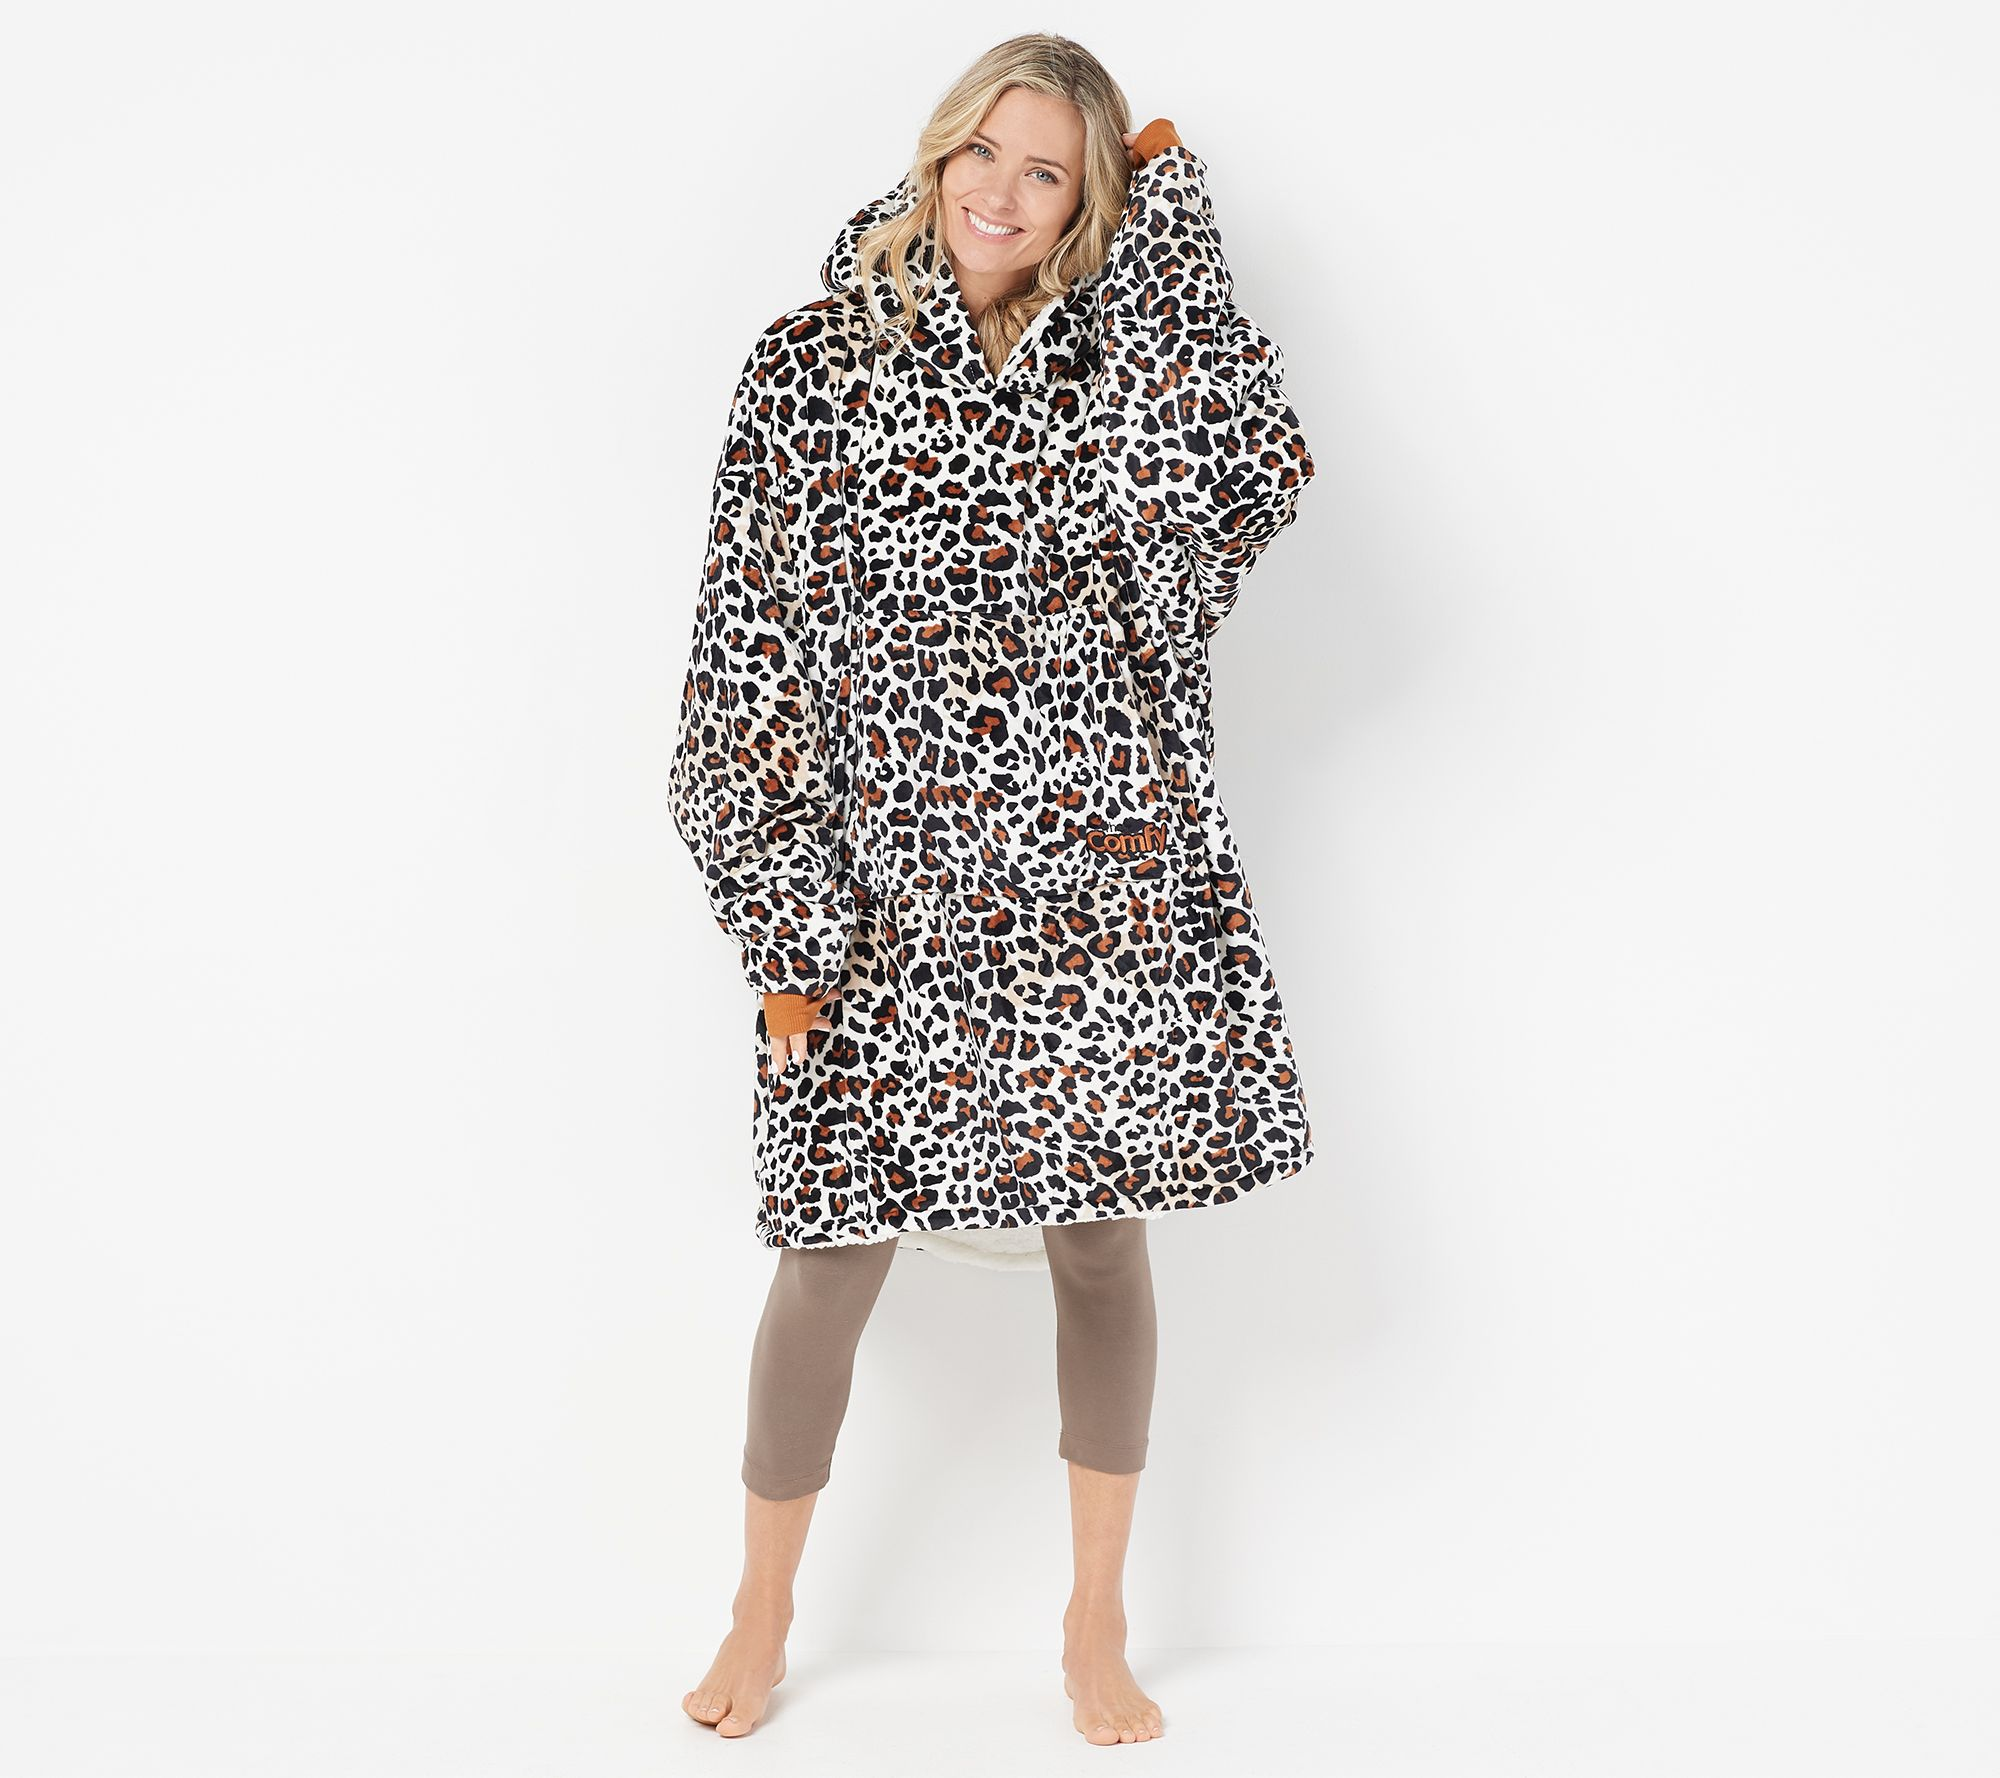 The Comfy Original Oversized Blanket Sweatshirt - Page 1 — QVC.com 9b90bc186